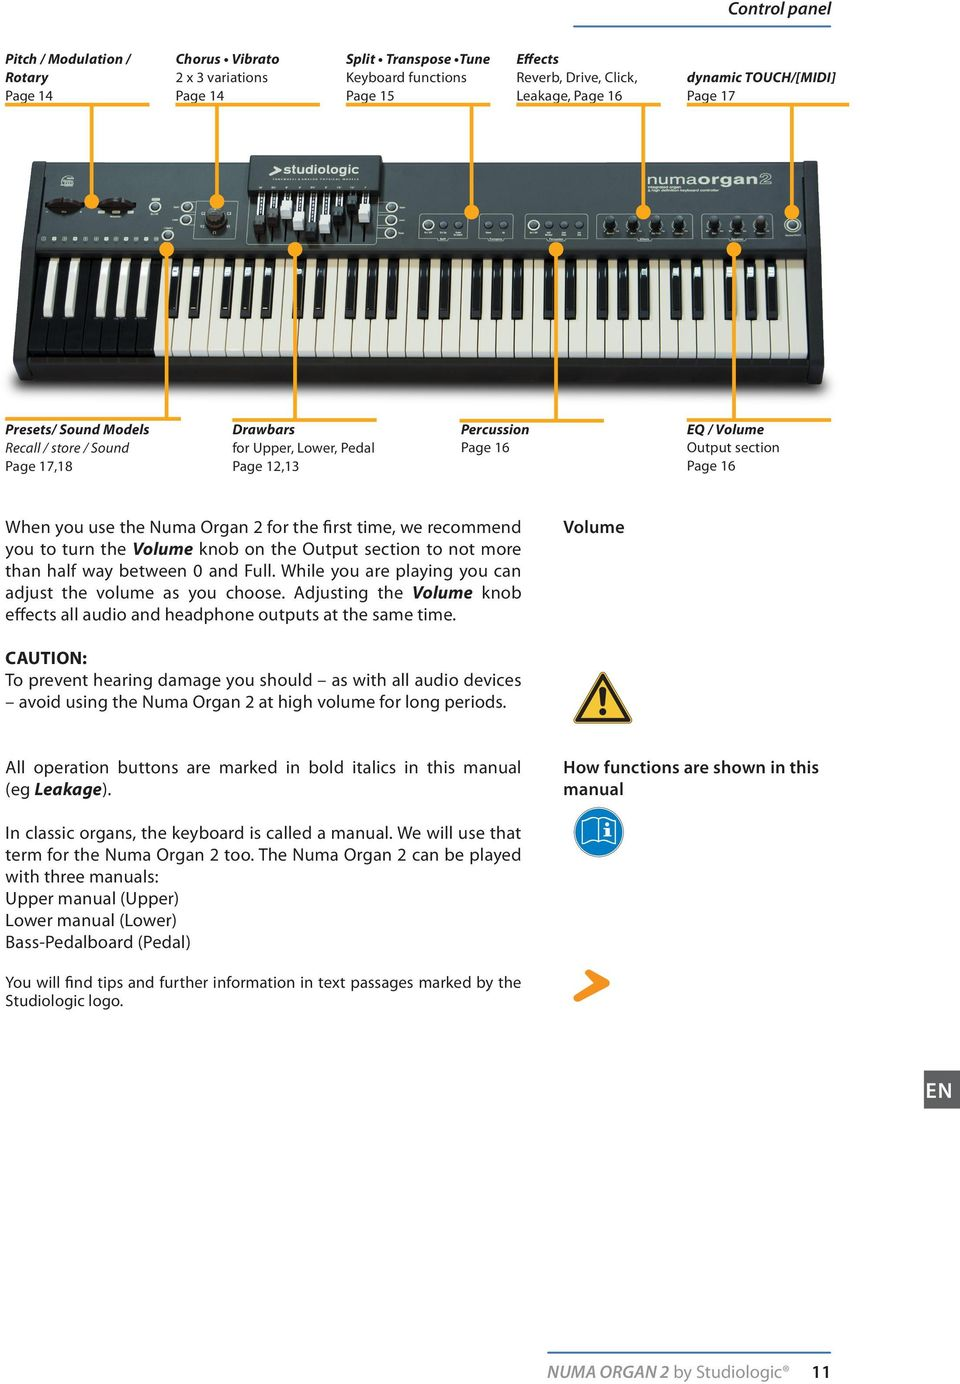 Organ 2 for the first time, we recommend you to turn the Volume knob on the Output section to not more than half way between 0 and Full. While you are playing you can adjust the volume as you choose.